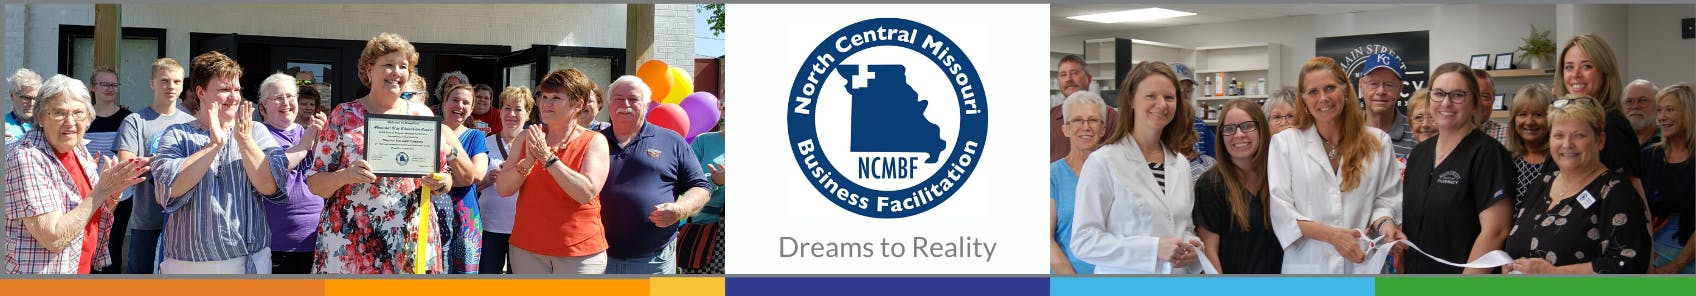 North Central Missouri Business Facilitation Helps Bring Dreams to Reality